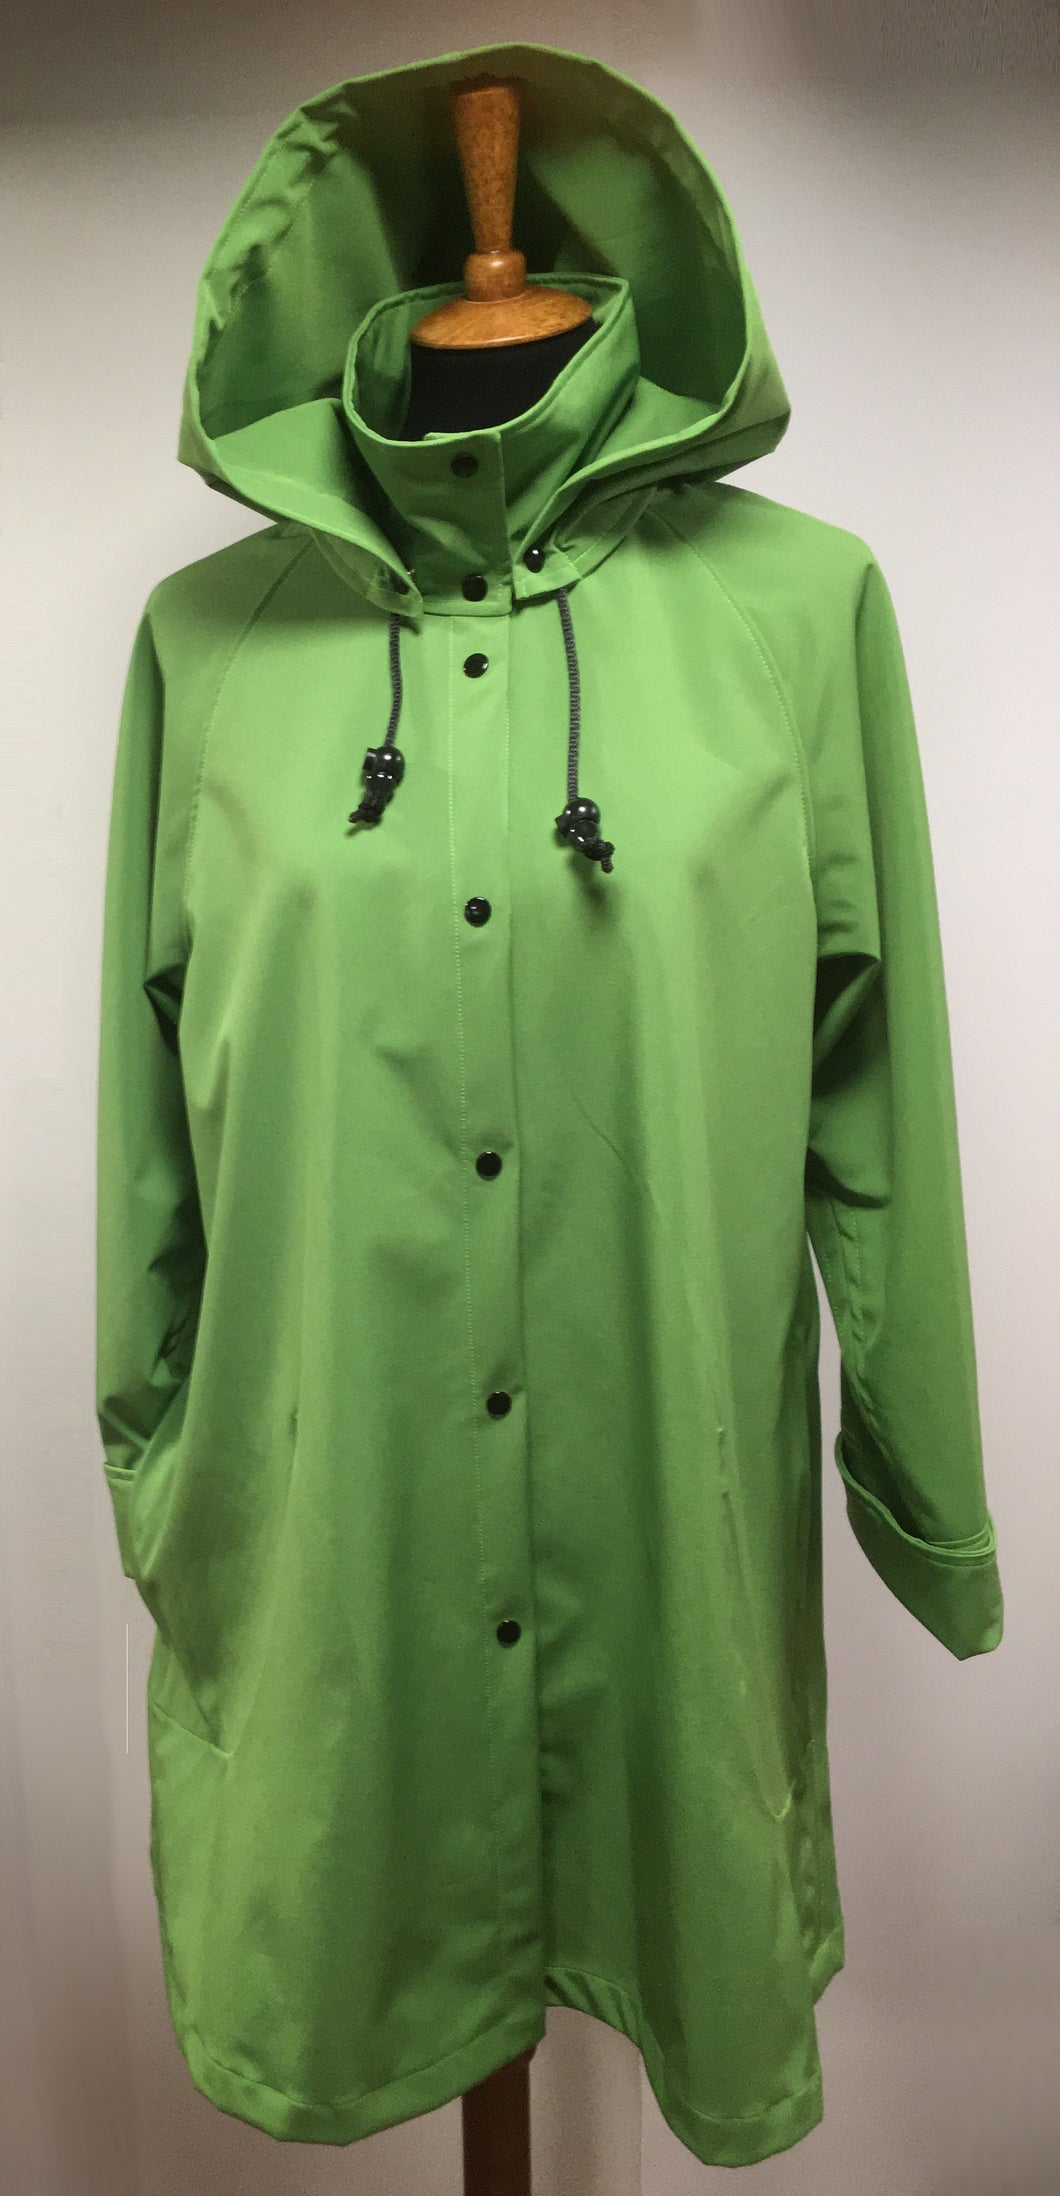 *Women's Green Apple Fleece Lined Snap Raincoat (SF0919C)